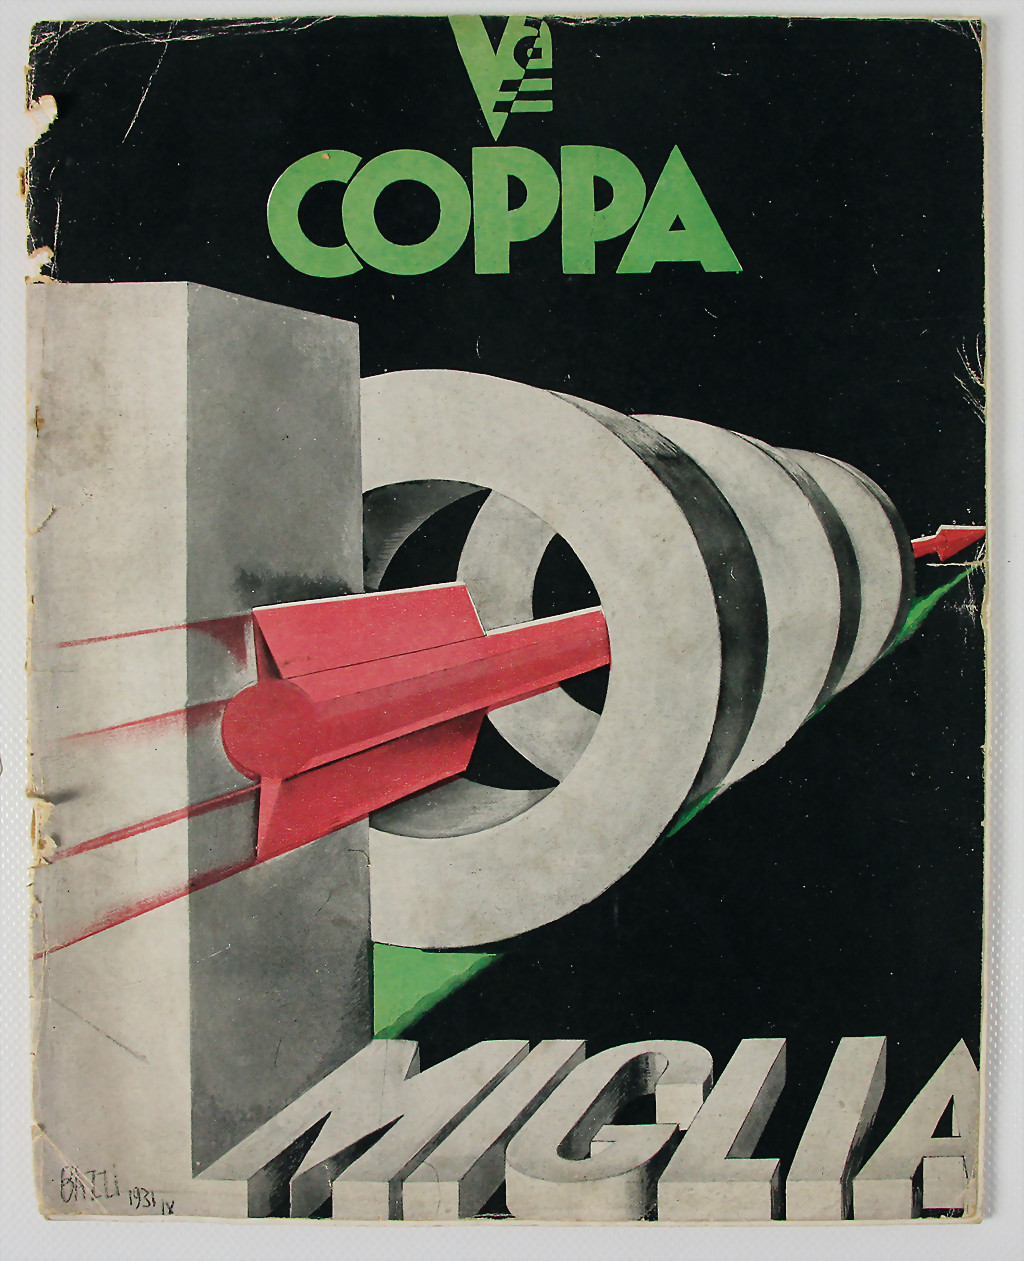 Mille Miglia race programme 1931 - result 1.500 €